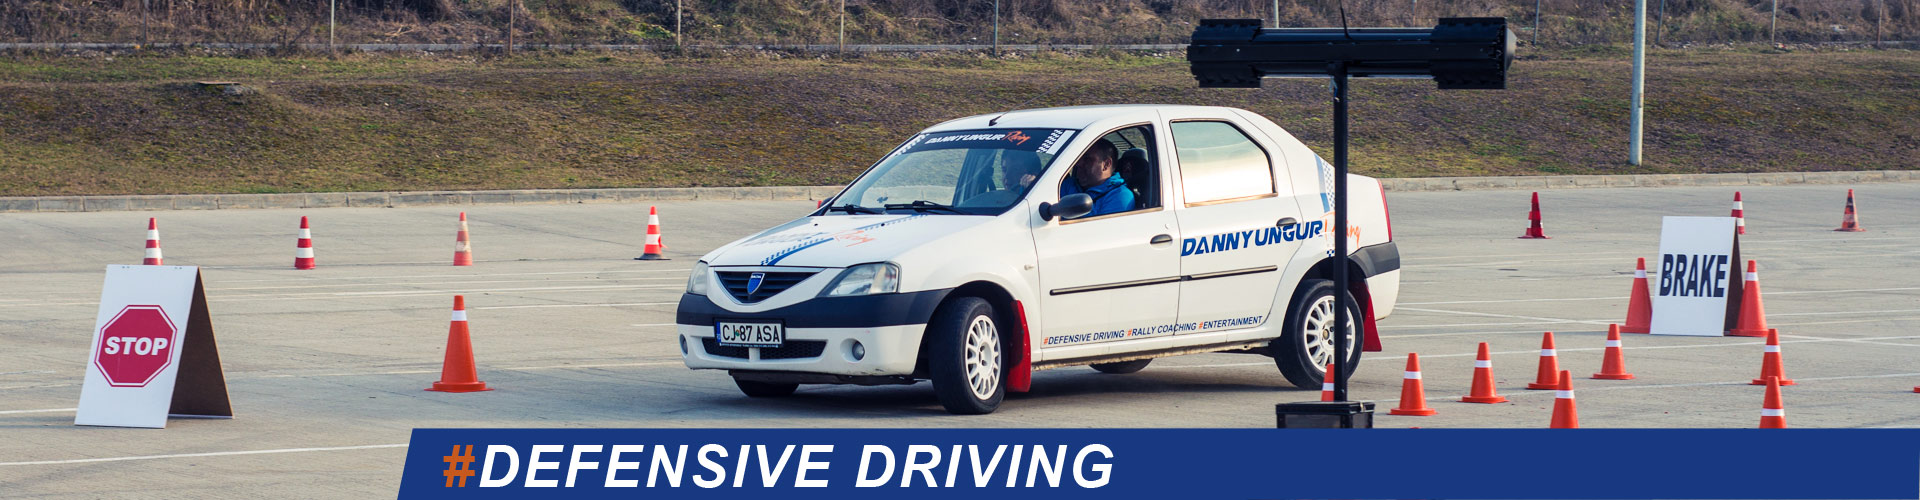 BANN-DEFENSIVE-DRIVING-1